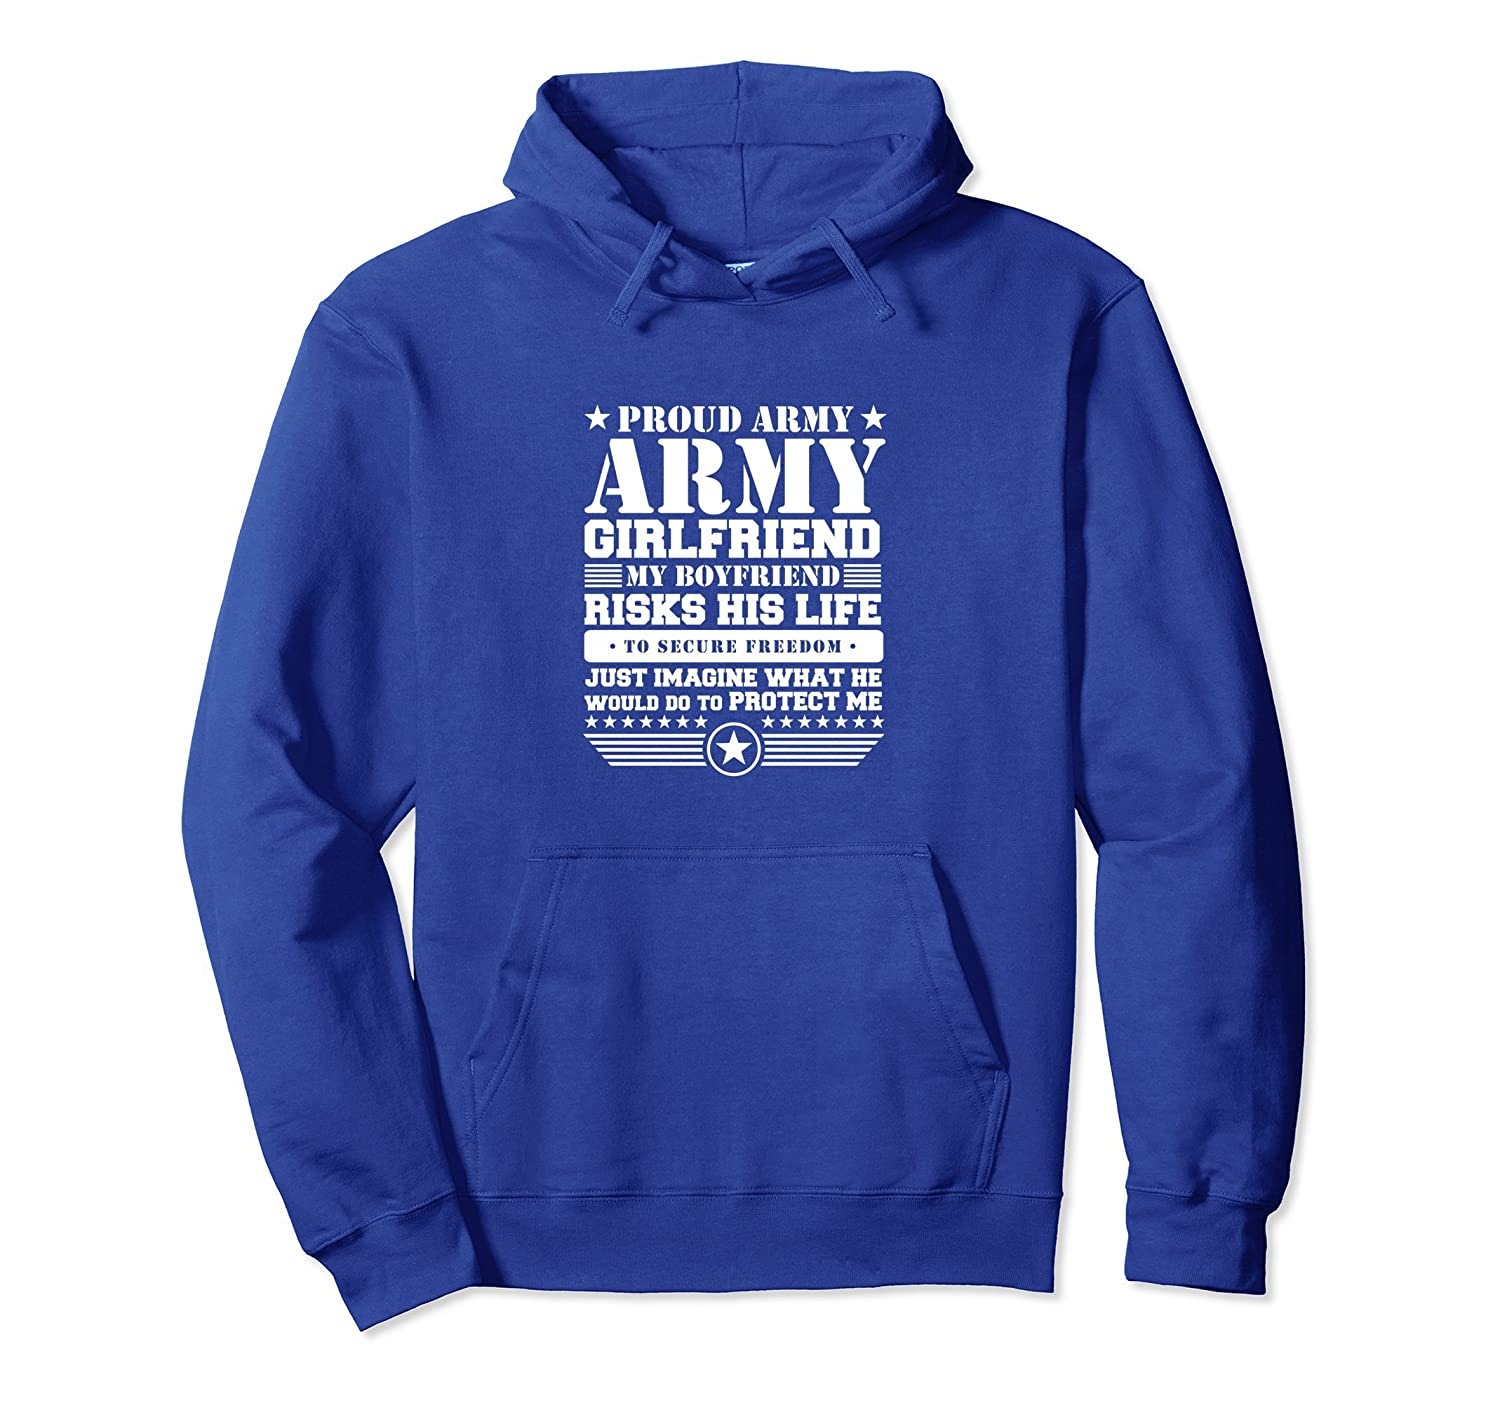 Proud Army Girlfriend Hoody Military Girlfriend Protects Me-mt